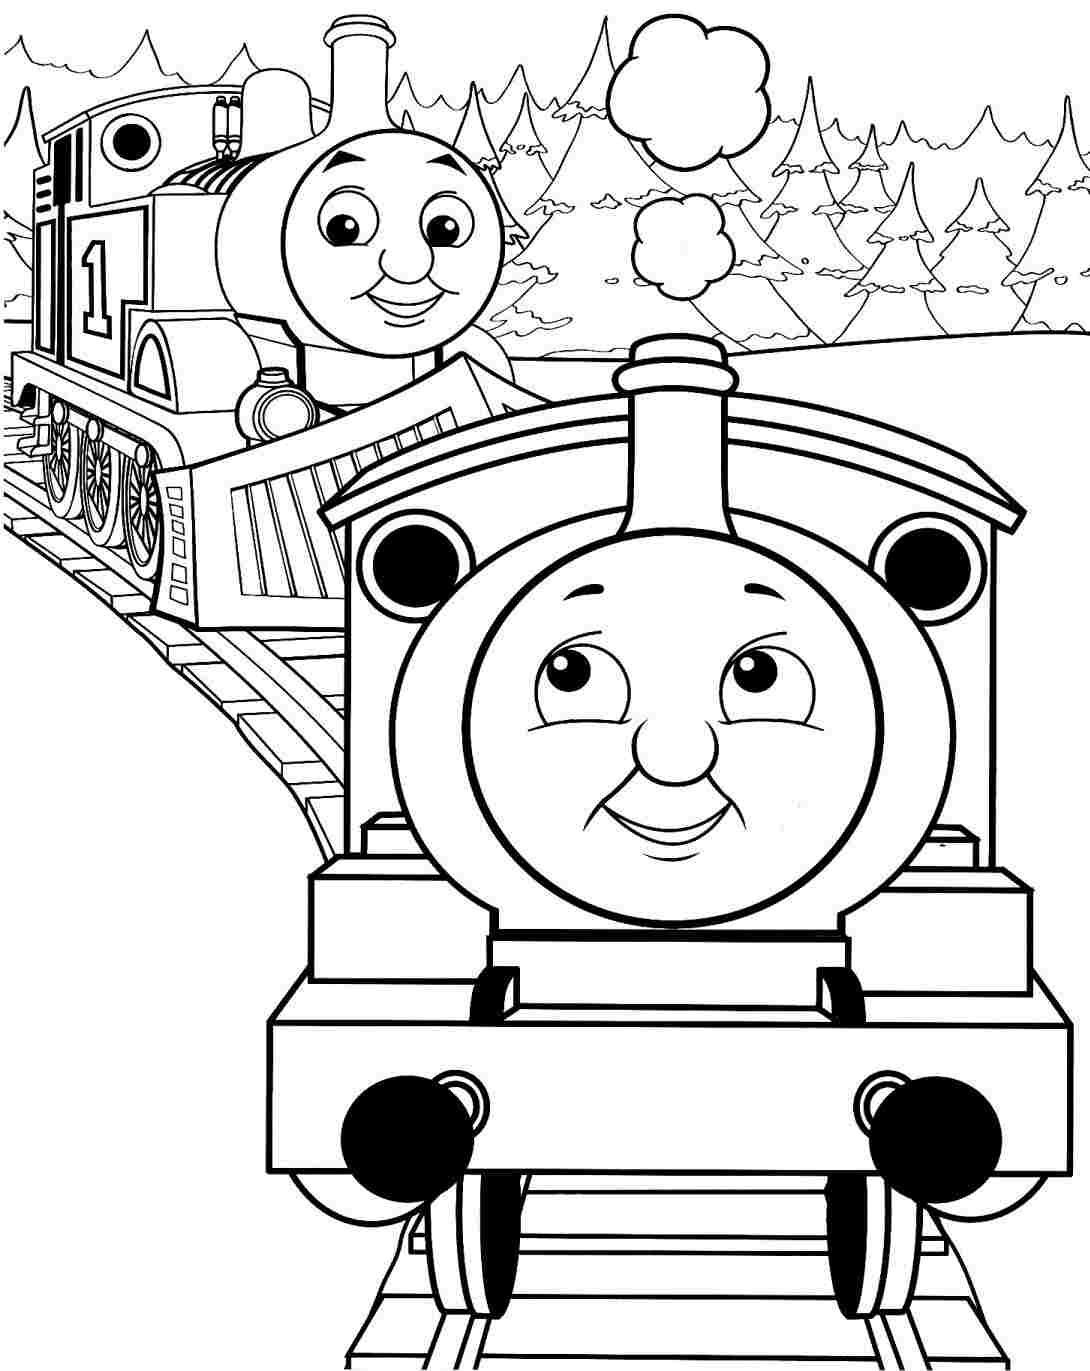 1090x1371 Simple Thomas The Train Coloring Pages Thomas The Train Coloring